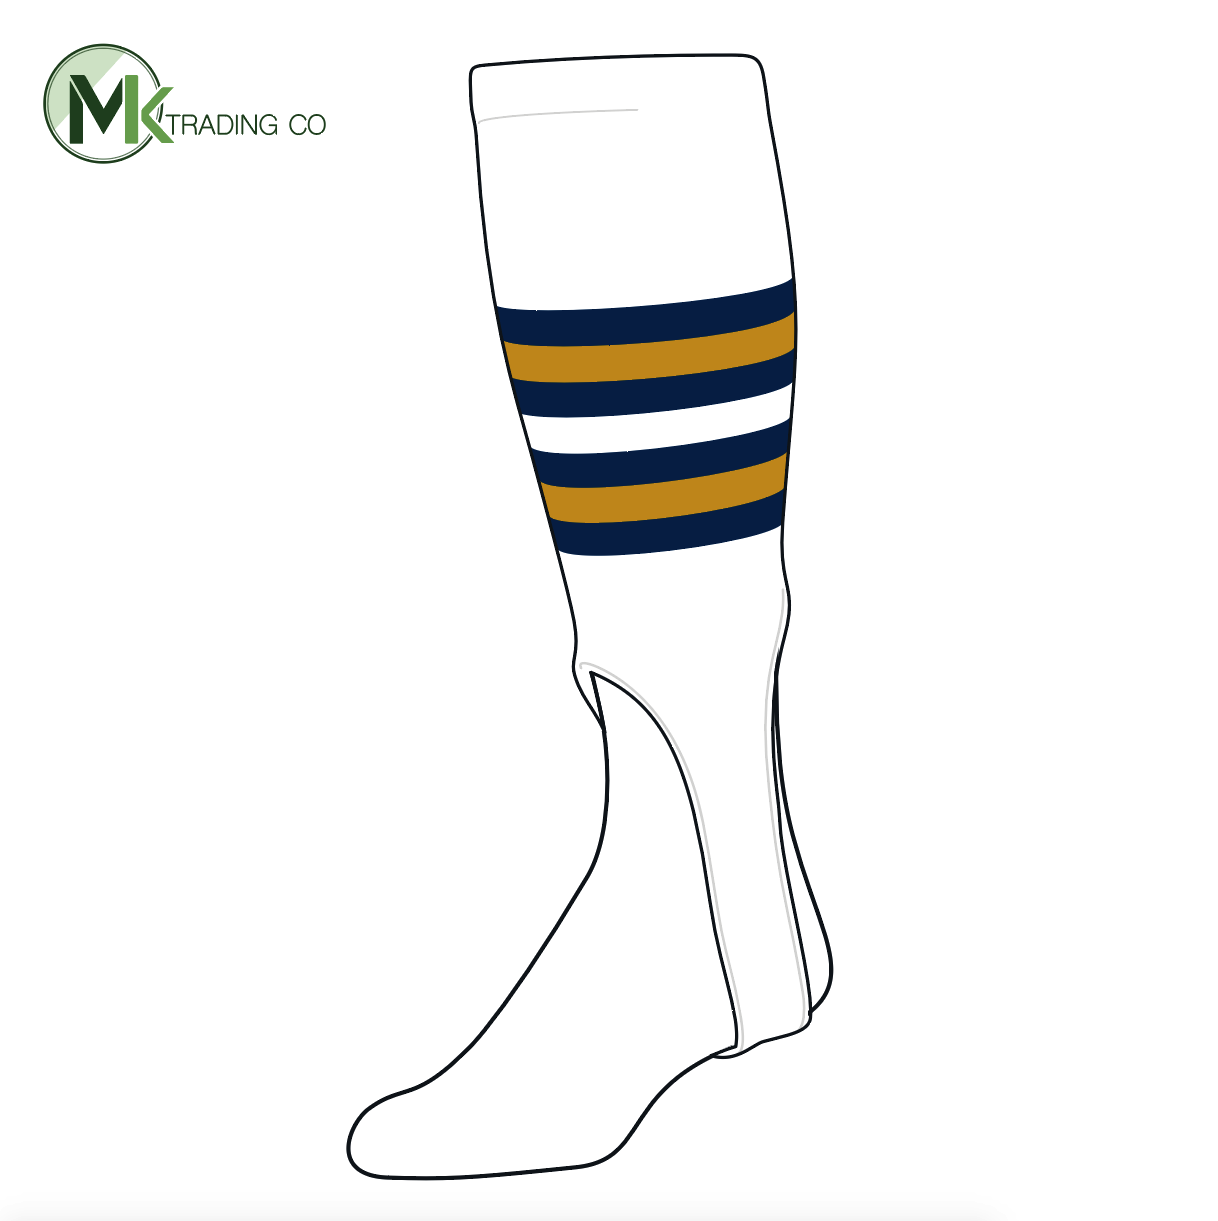 TCK Baseball Stirrups Medium (200I, 7in) White, Navy, Old Gold